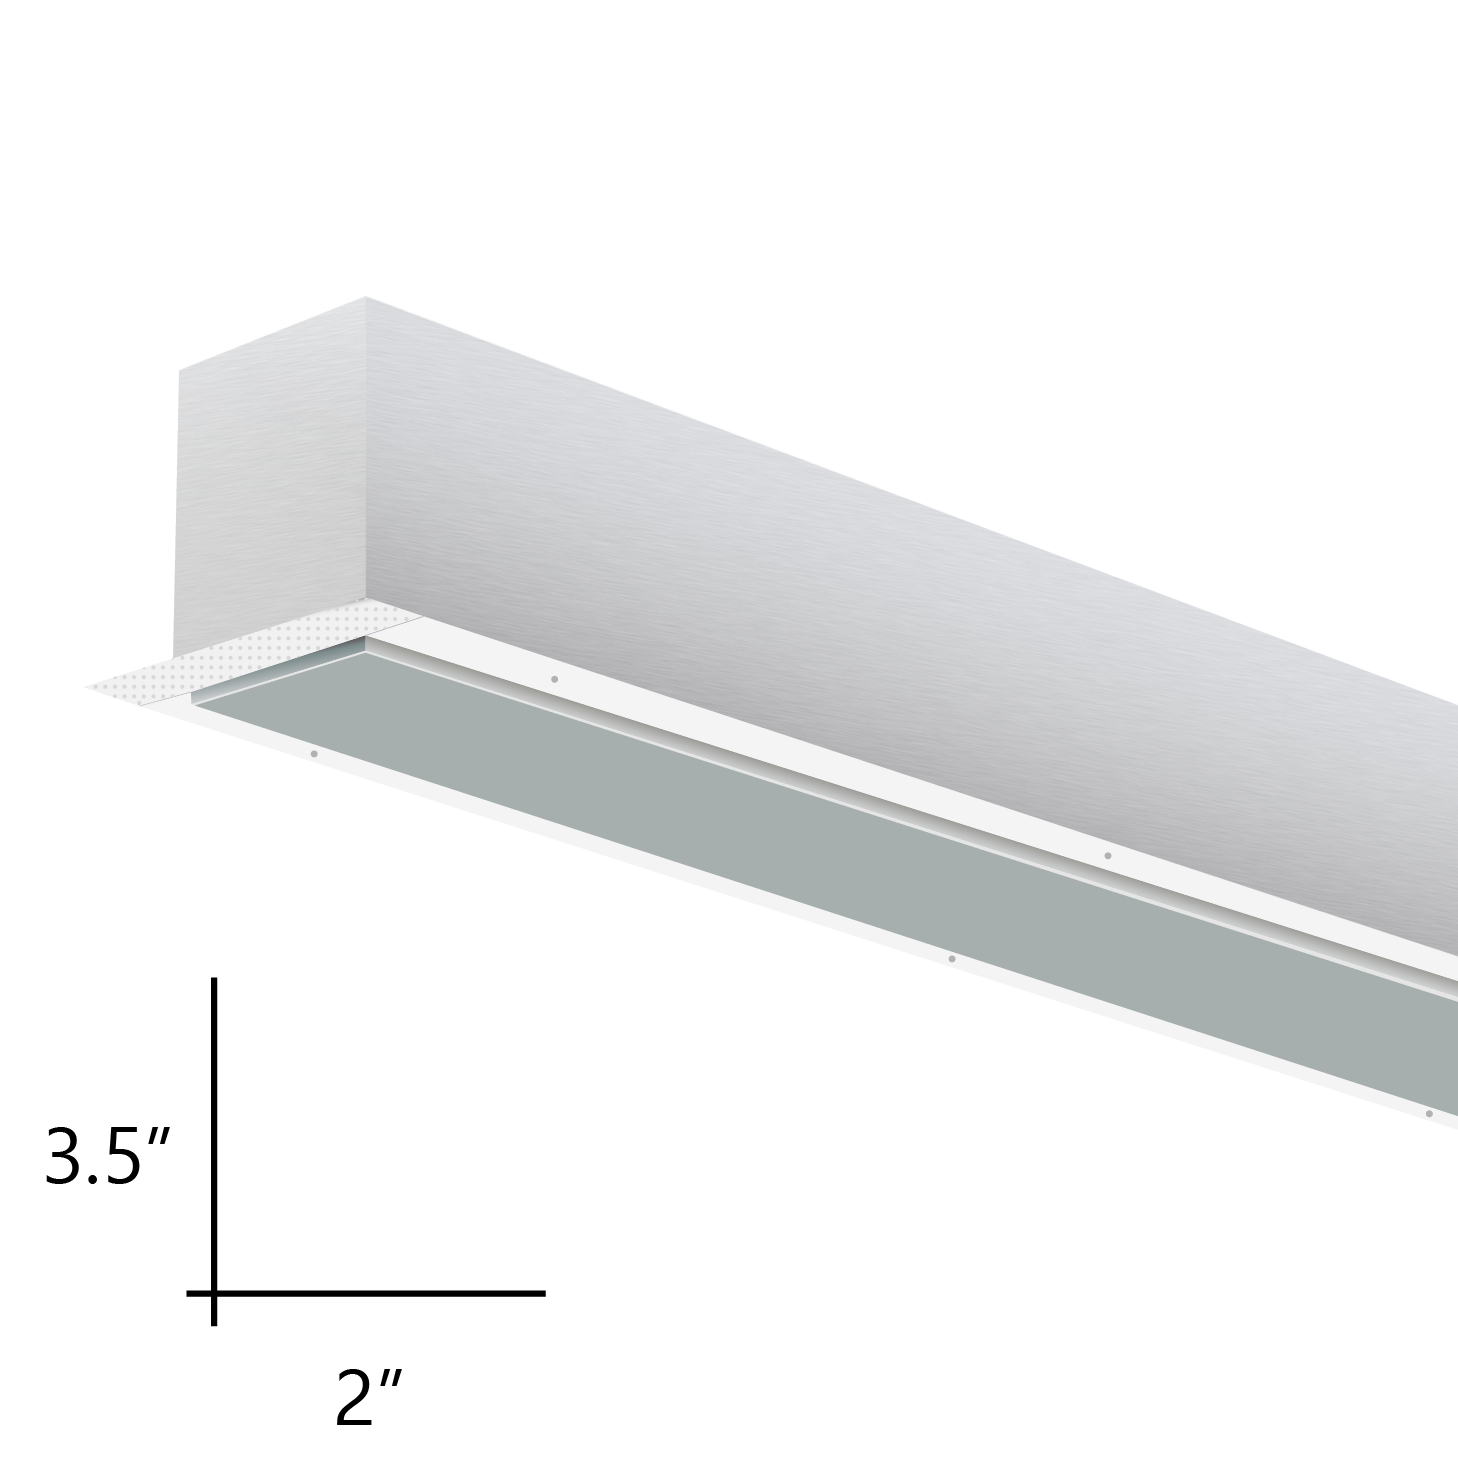 Alcon lighting 14003 4 planor 23 architectural led 4 foot linear alcon lighting 14003 4 planor 23 architectural led 4 foot linear recessed mount direct light fixture alconlighting arubaitofo Choice Image